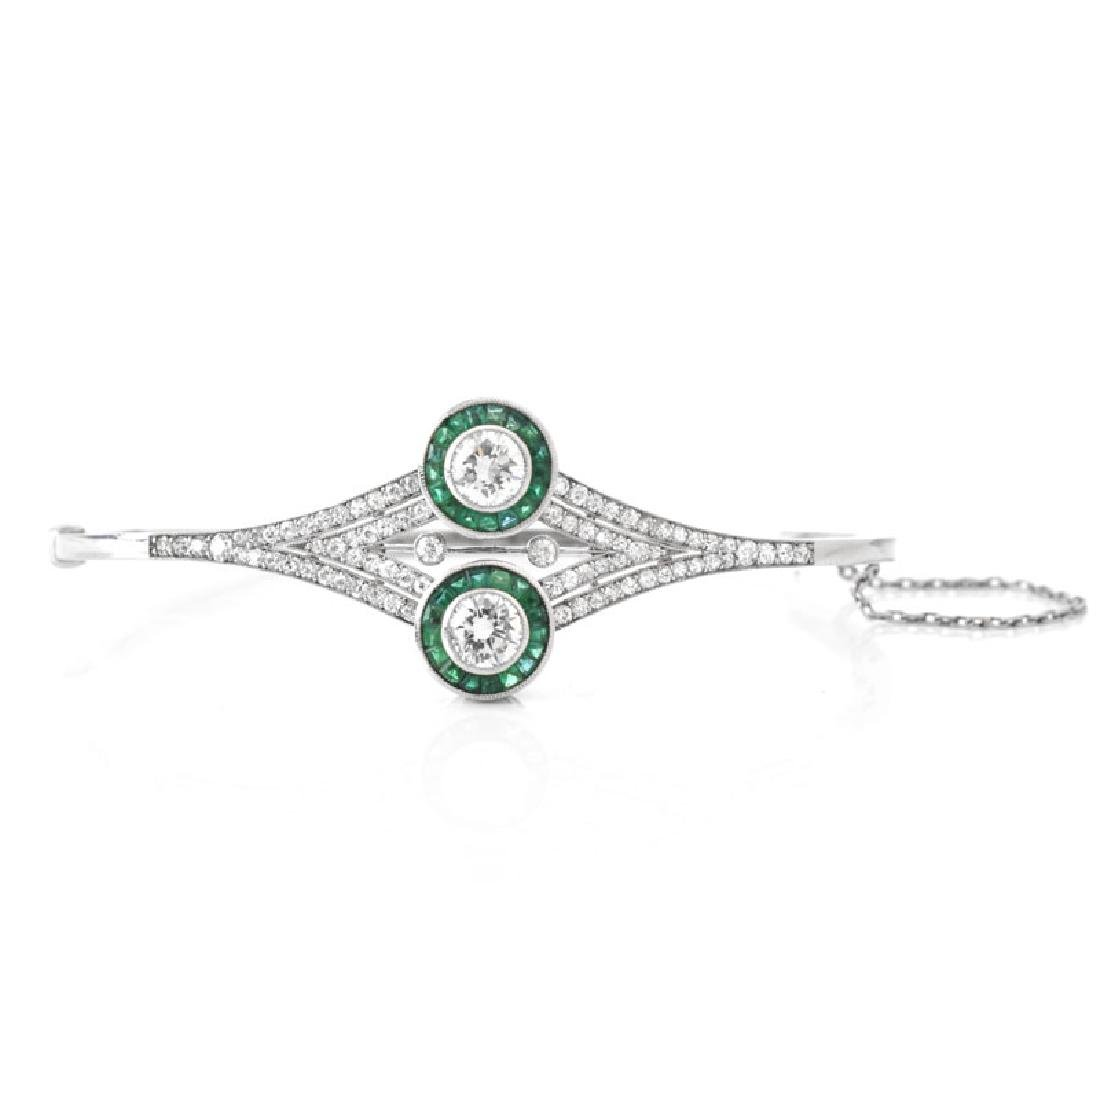 Art Deco style Approx. 2.50 Carat TW Diamond, Emerald